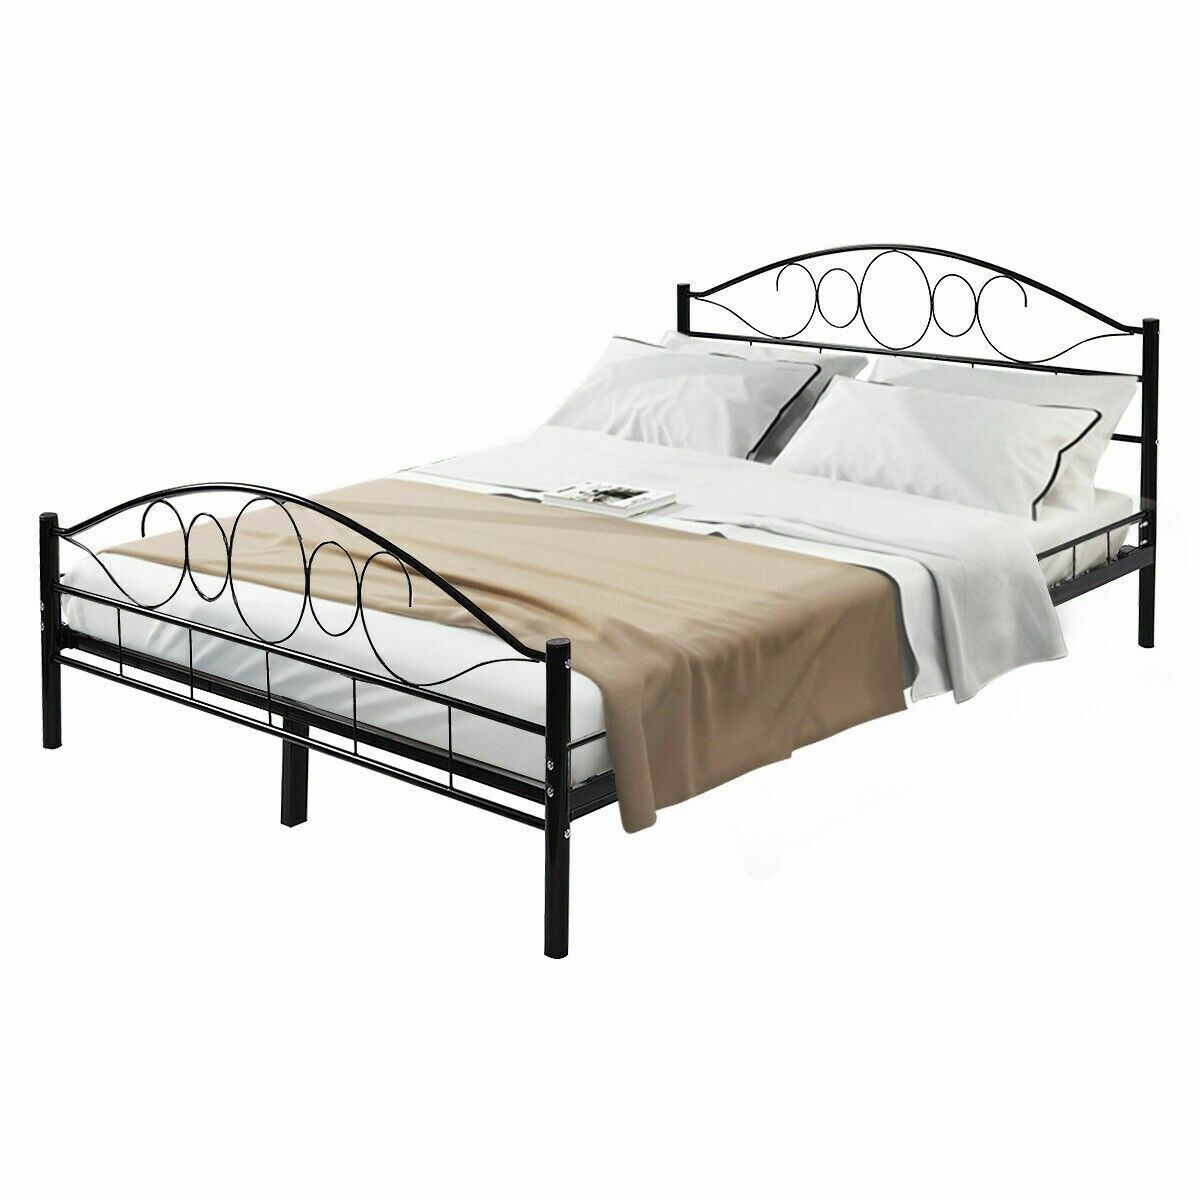 Queen Size Wood Slats Platform Headboard Footboard Metal Bed Frame